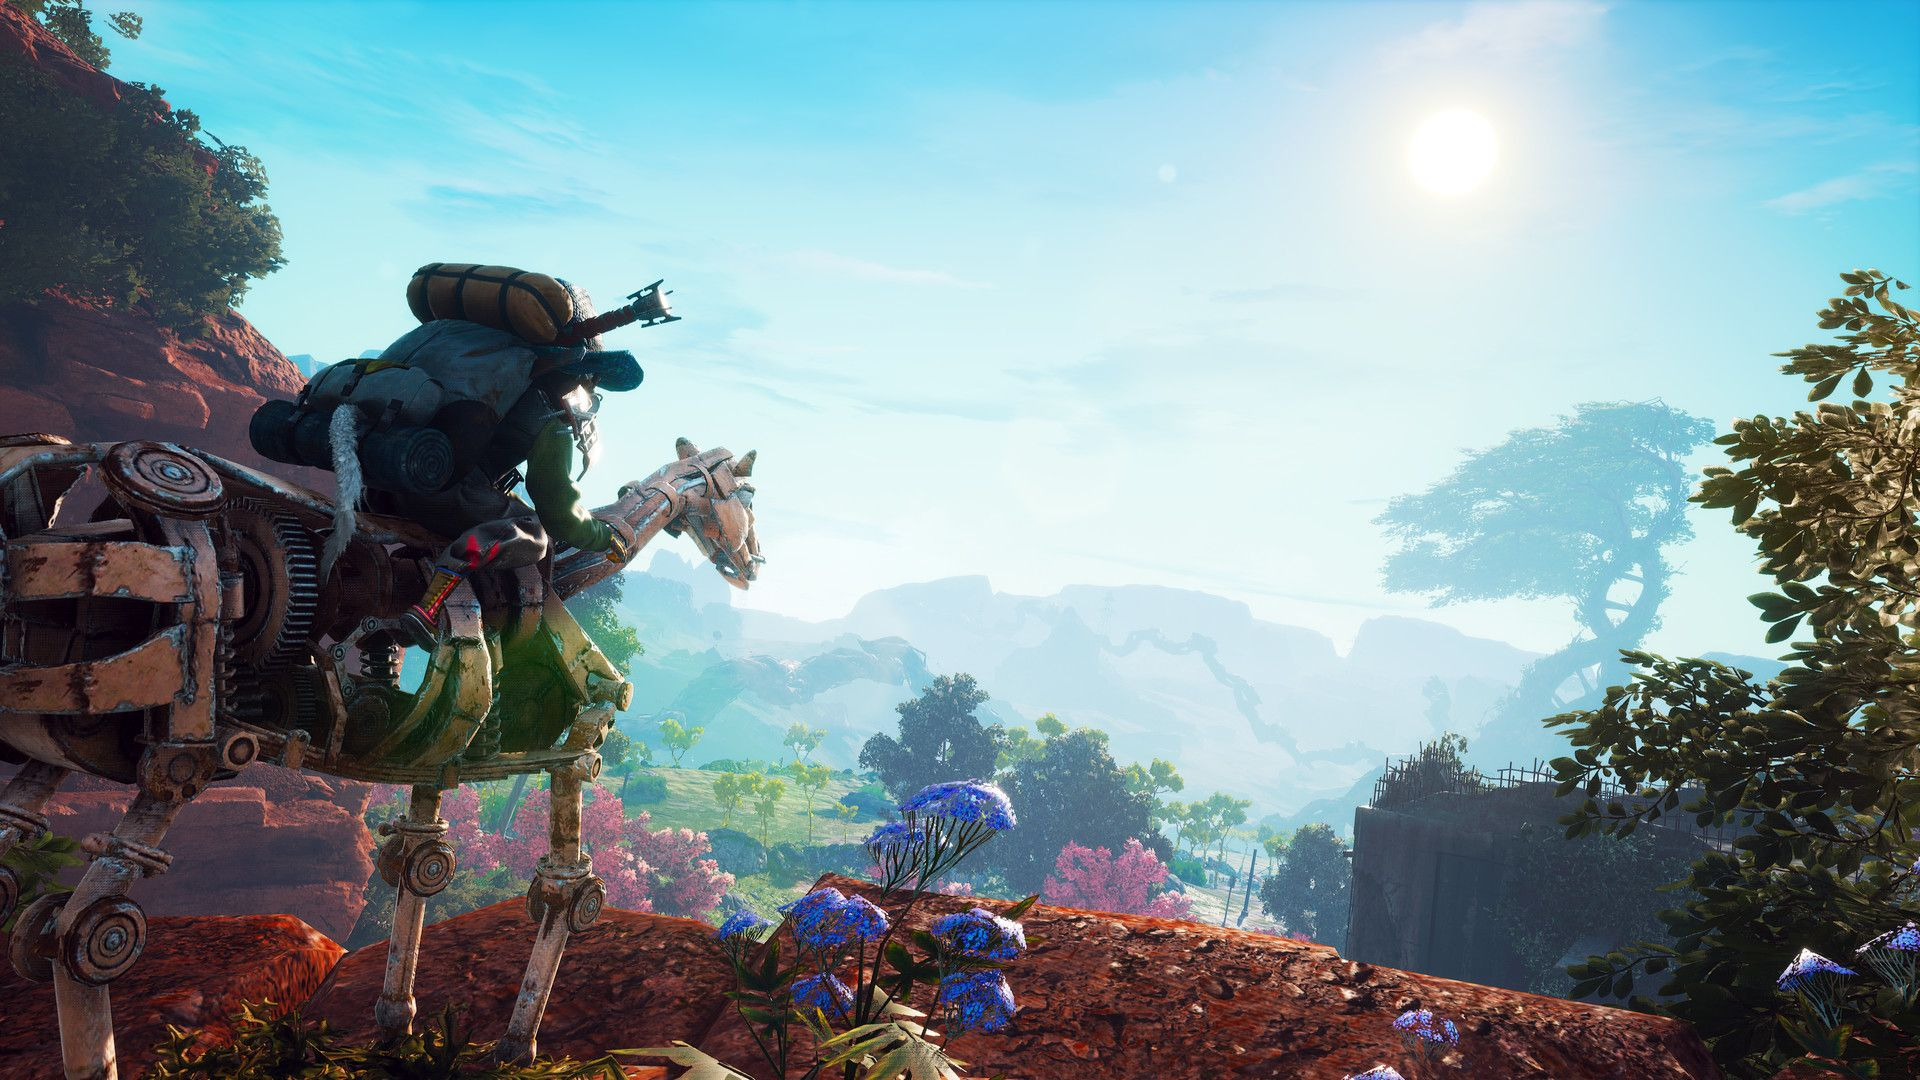 Biomutant Review – Attack of the Mutants - Market 4 Games